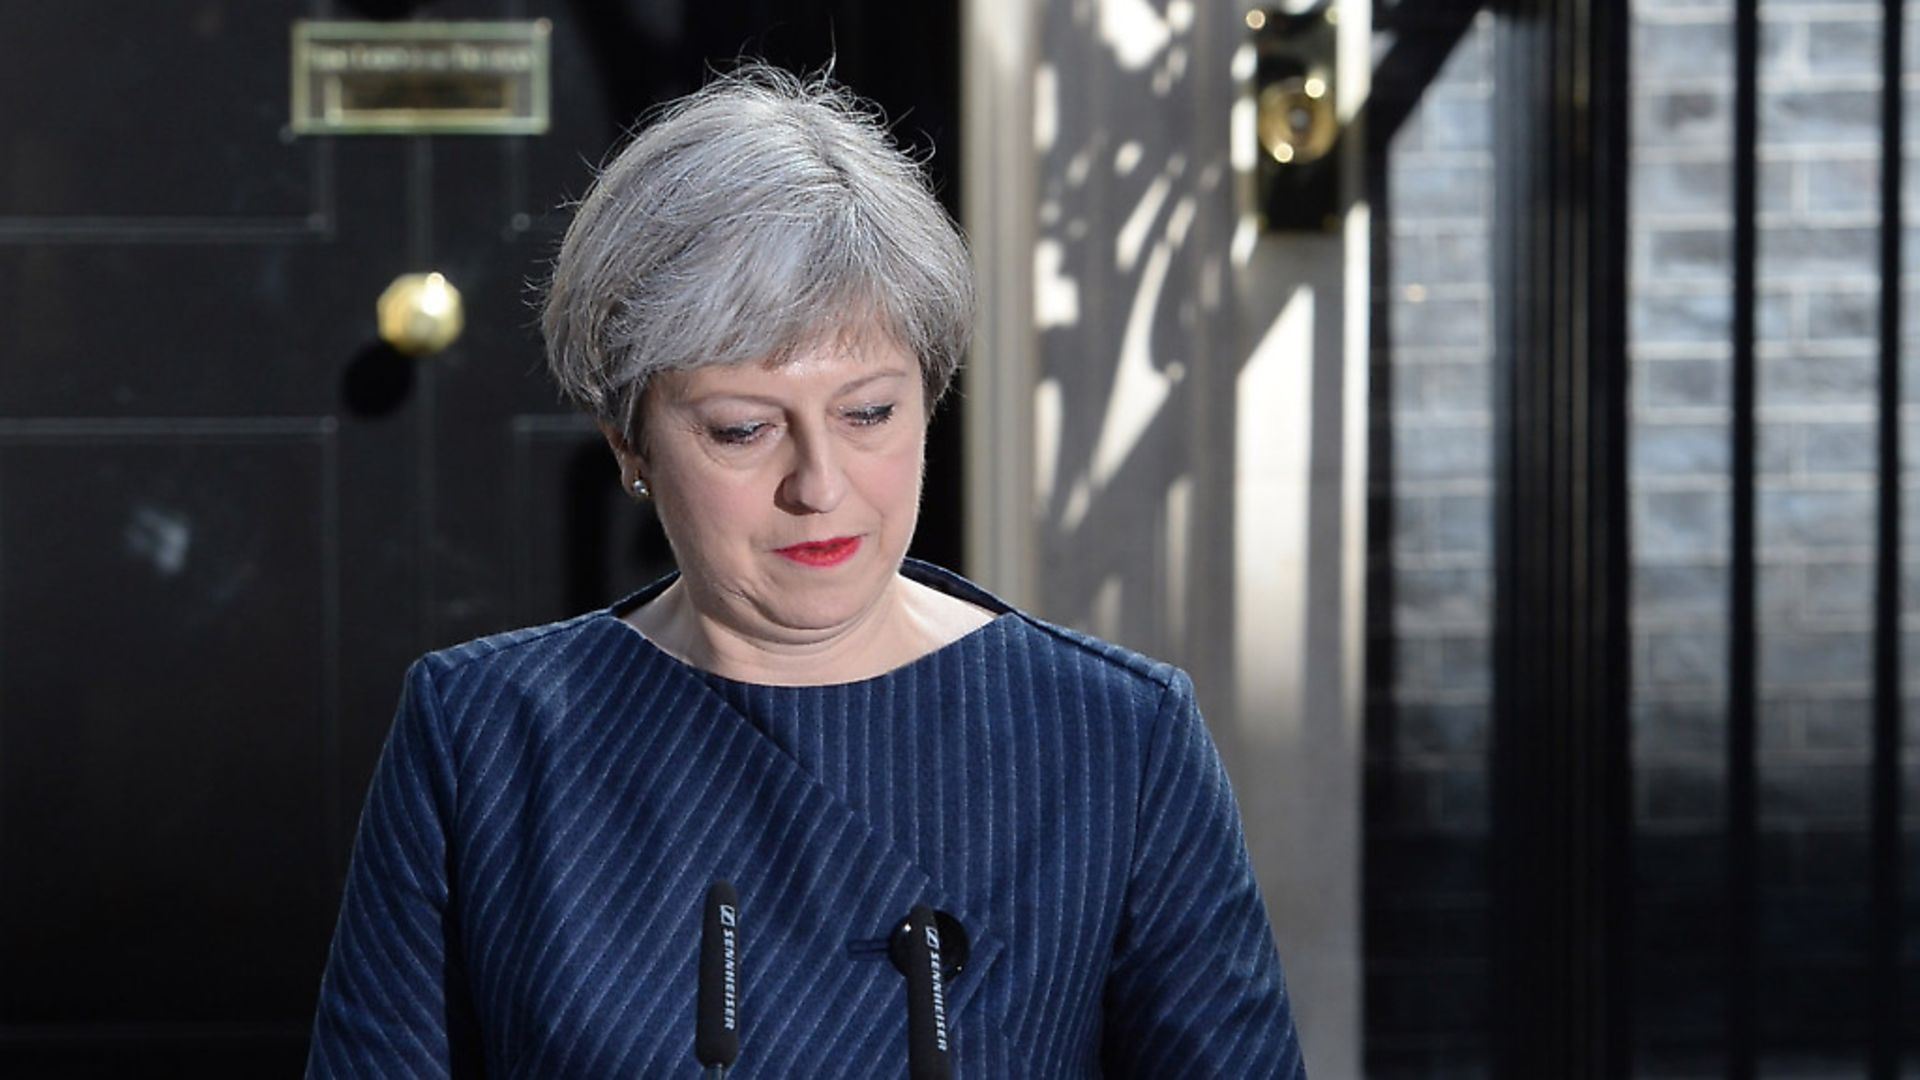 Prime Minister Theresa May. Photograph: John Stillwell/PA Images. - Credit: PA Archive/PA Images